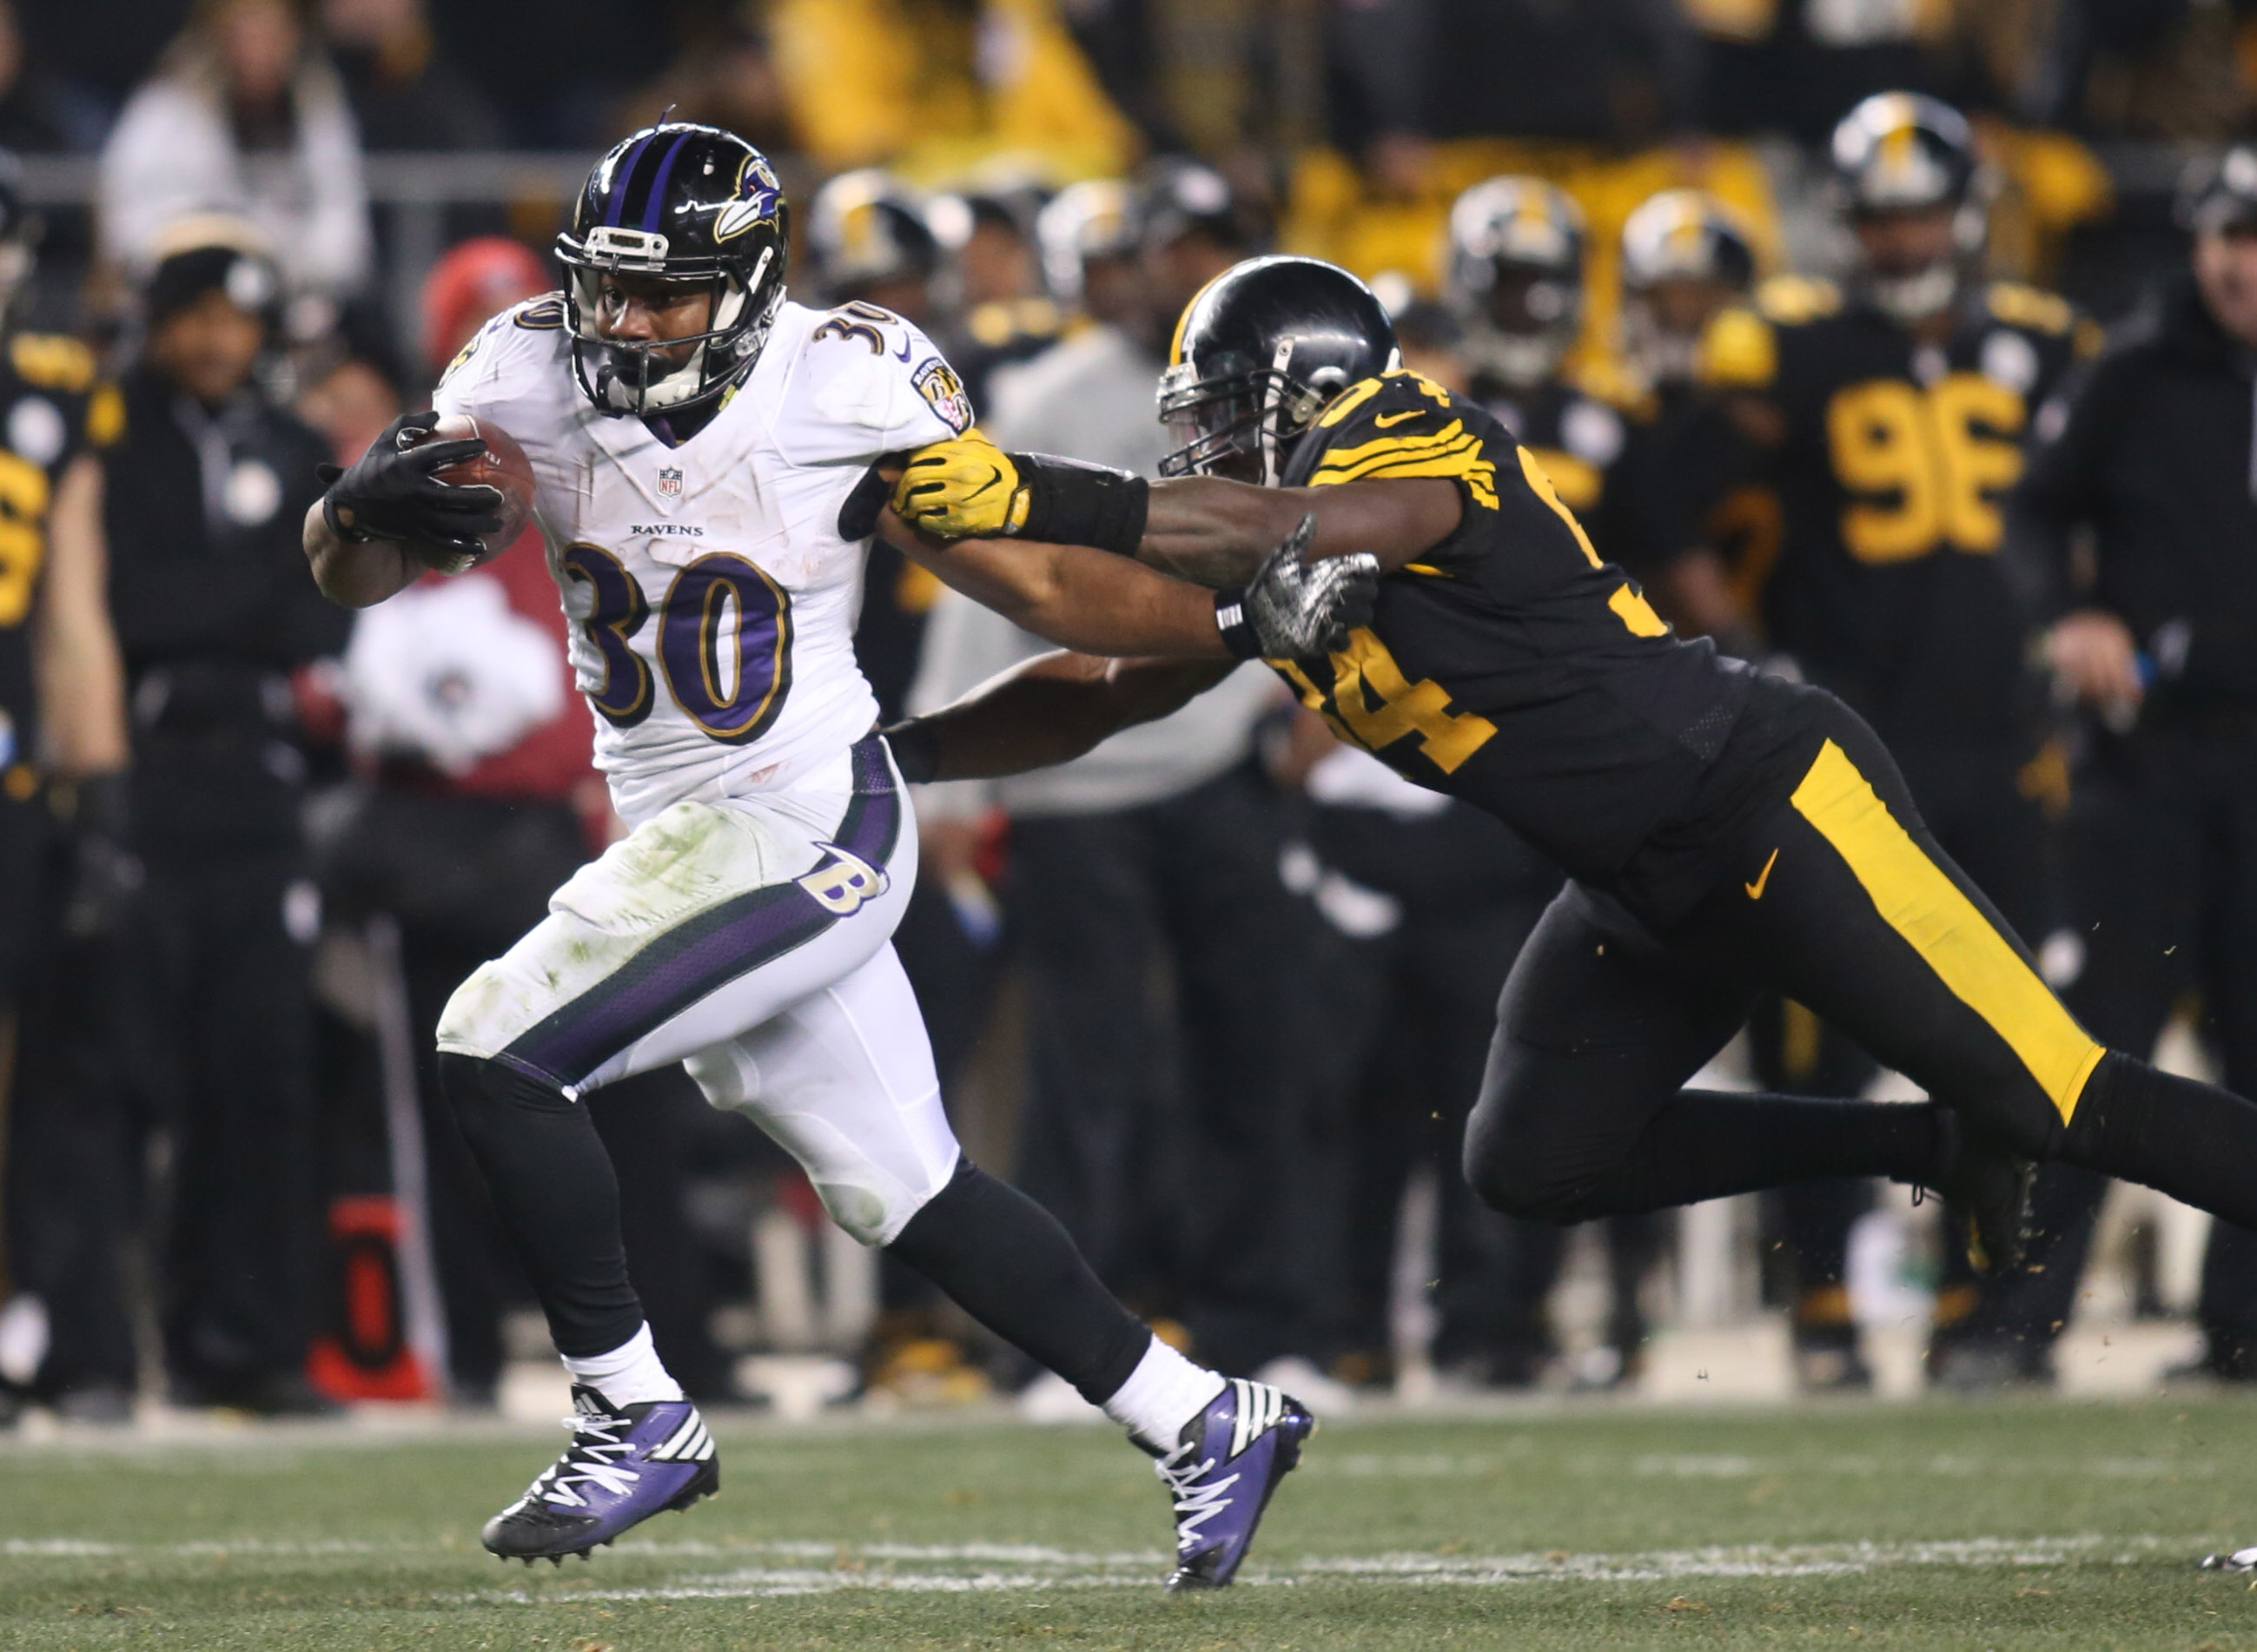 9775903-nfl-baltimore-ravens-at-pittsburgh-steelers